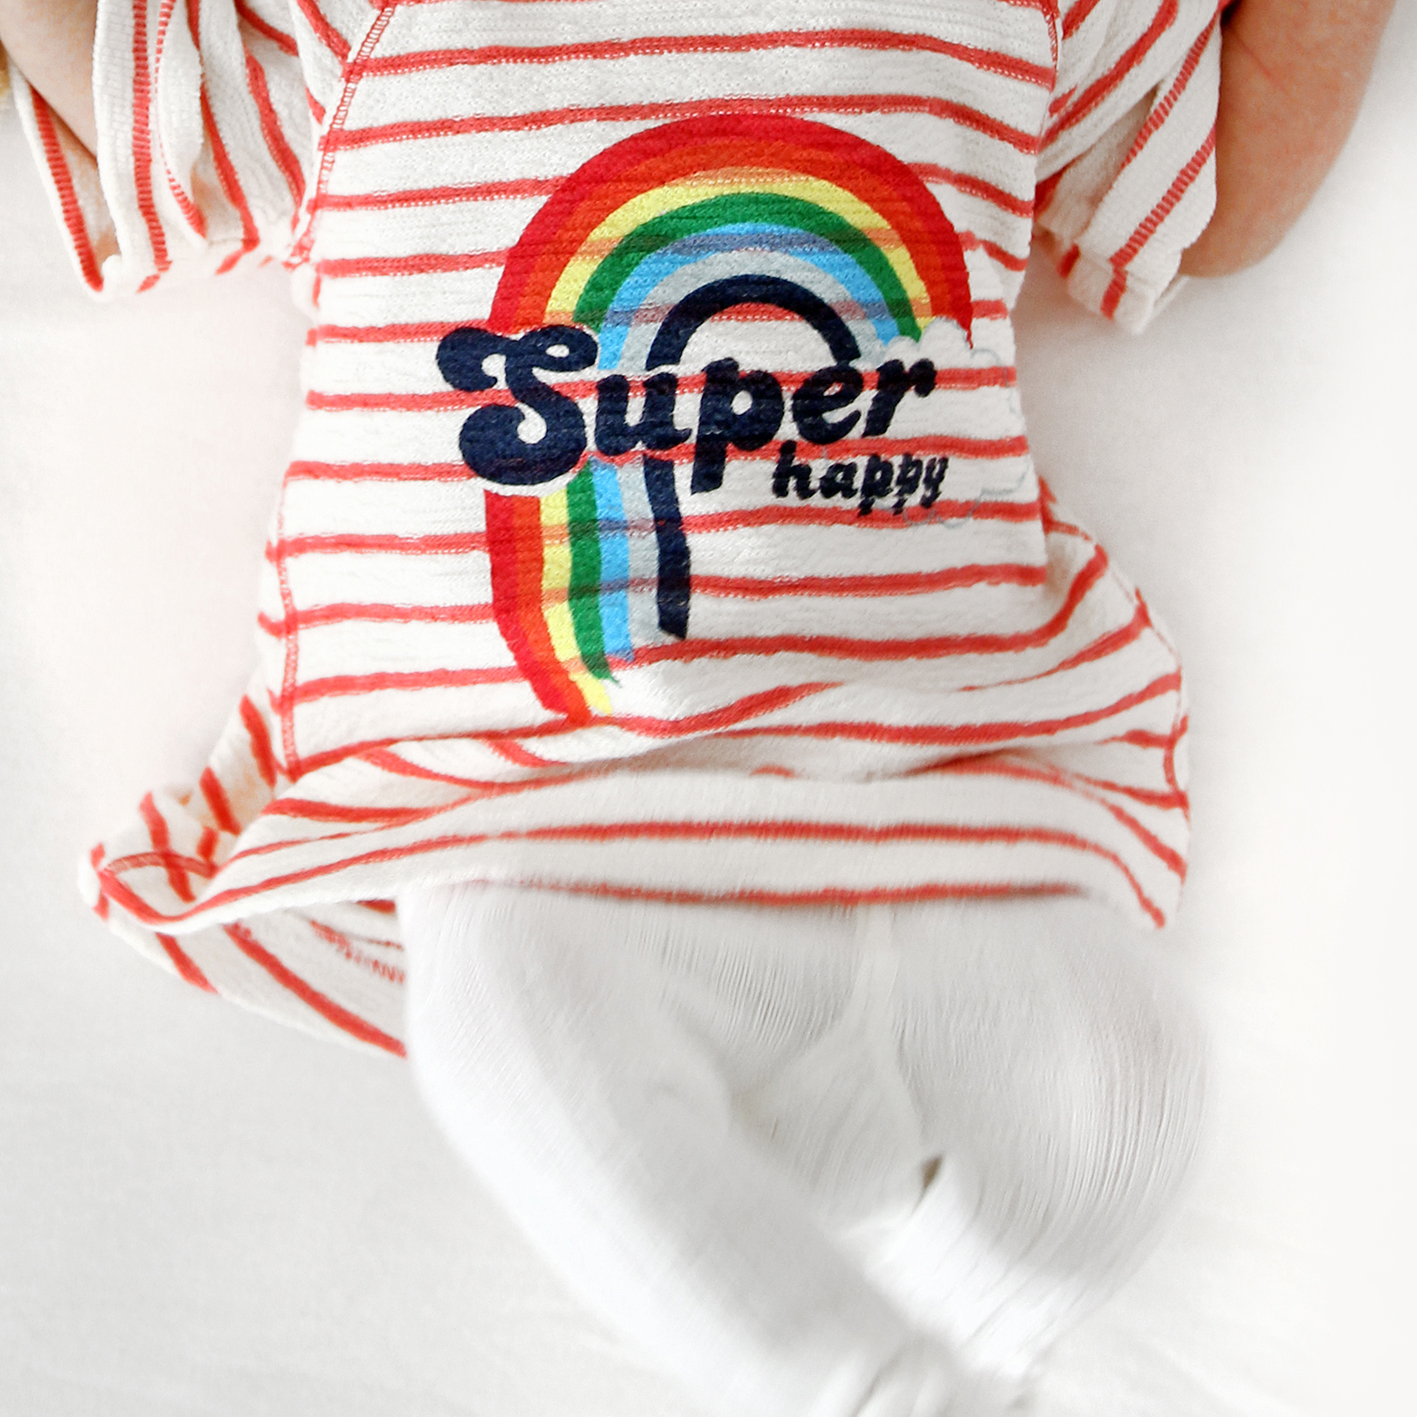 babyfashion